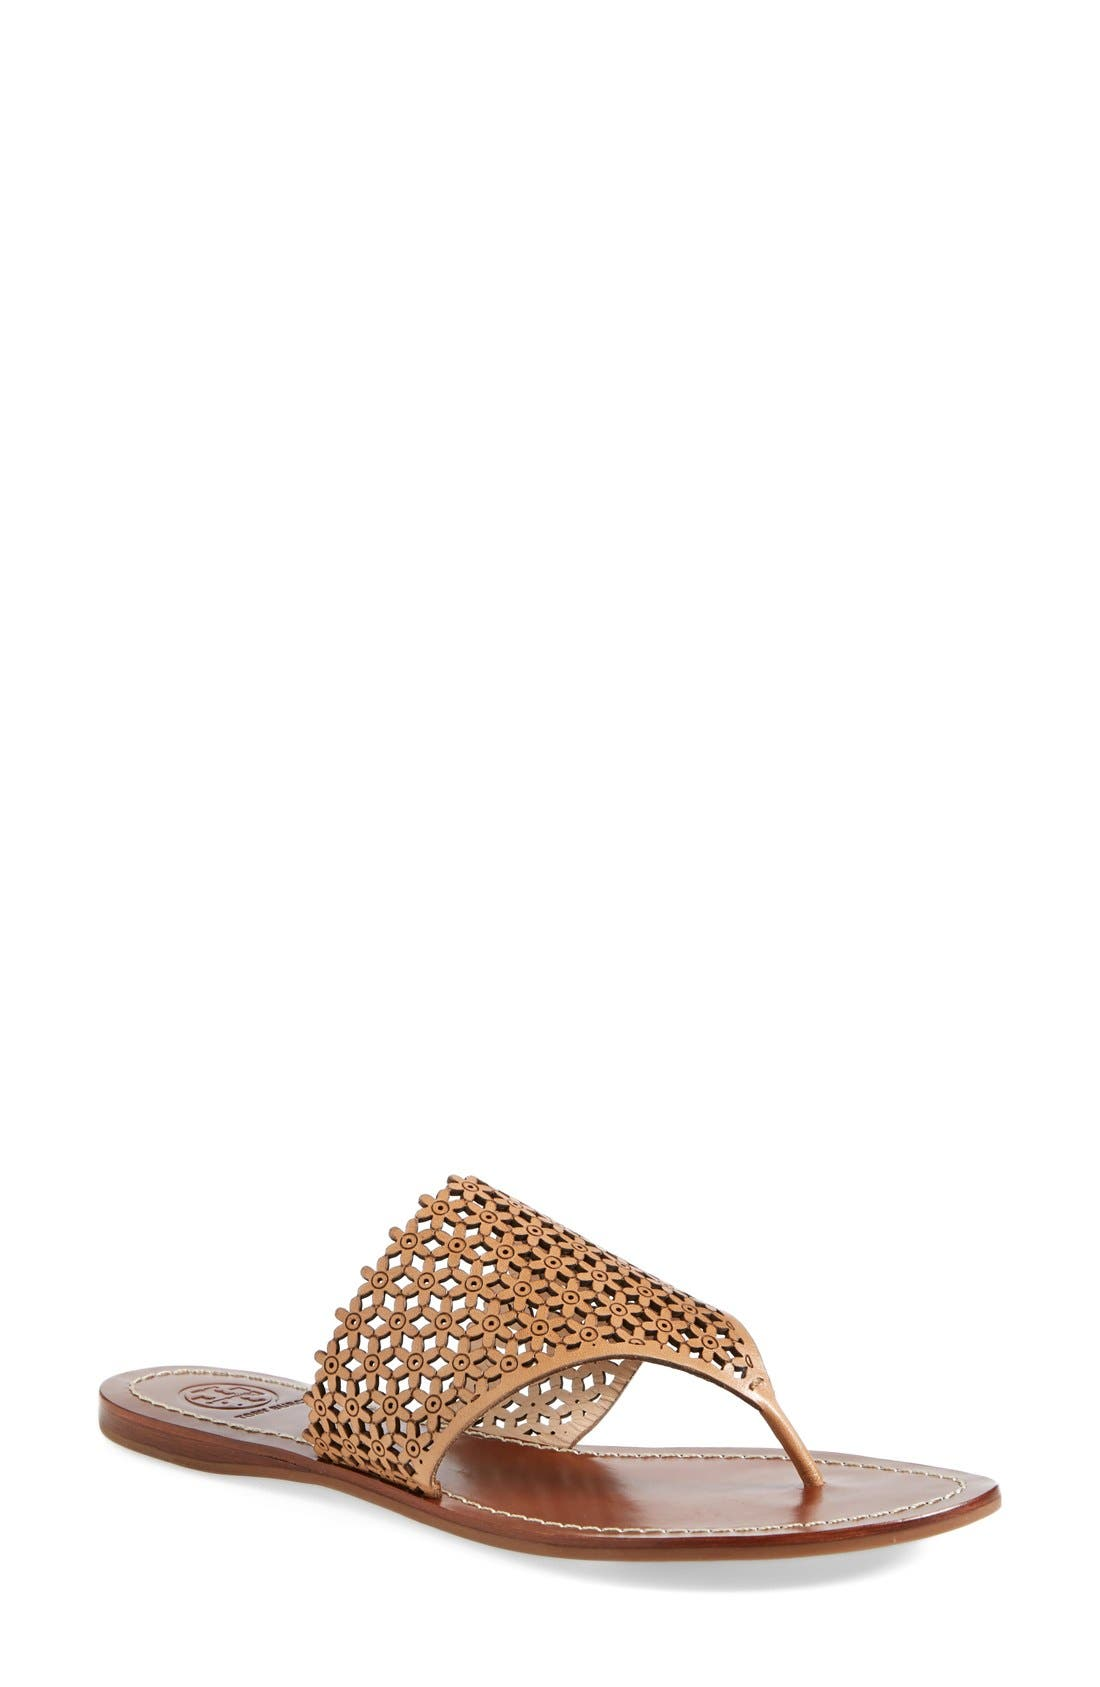 Alternate Image 1 Selected - Tory Burch 'Daisy' Perforated Sandal (Women)